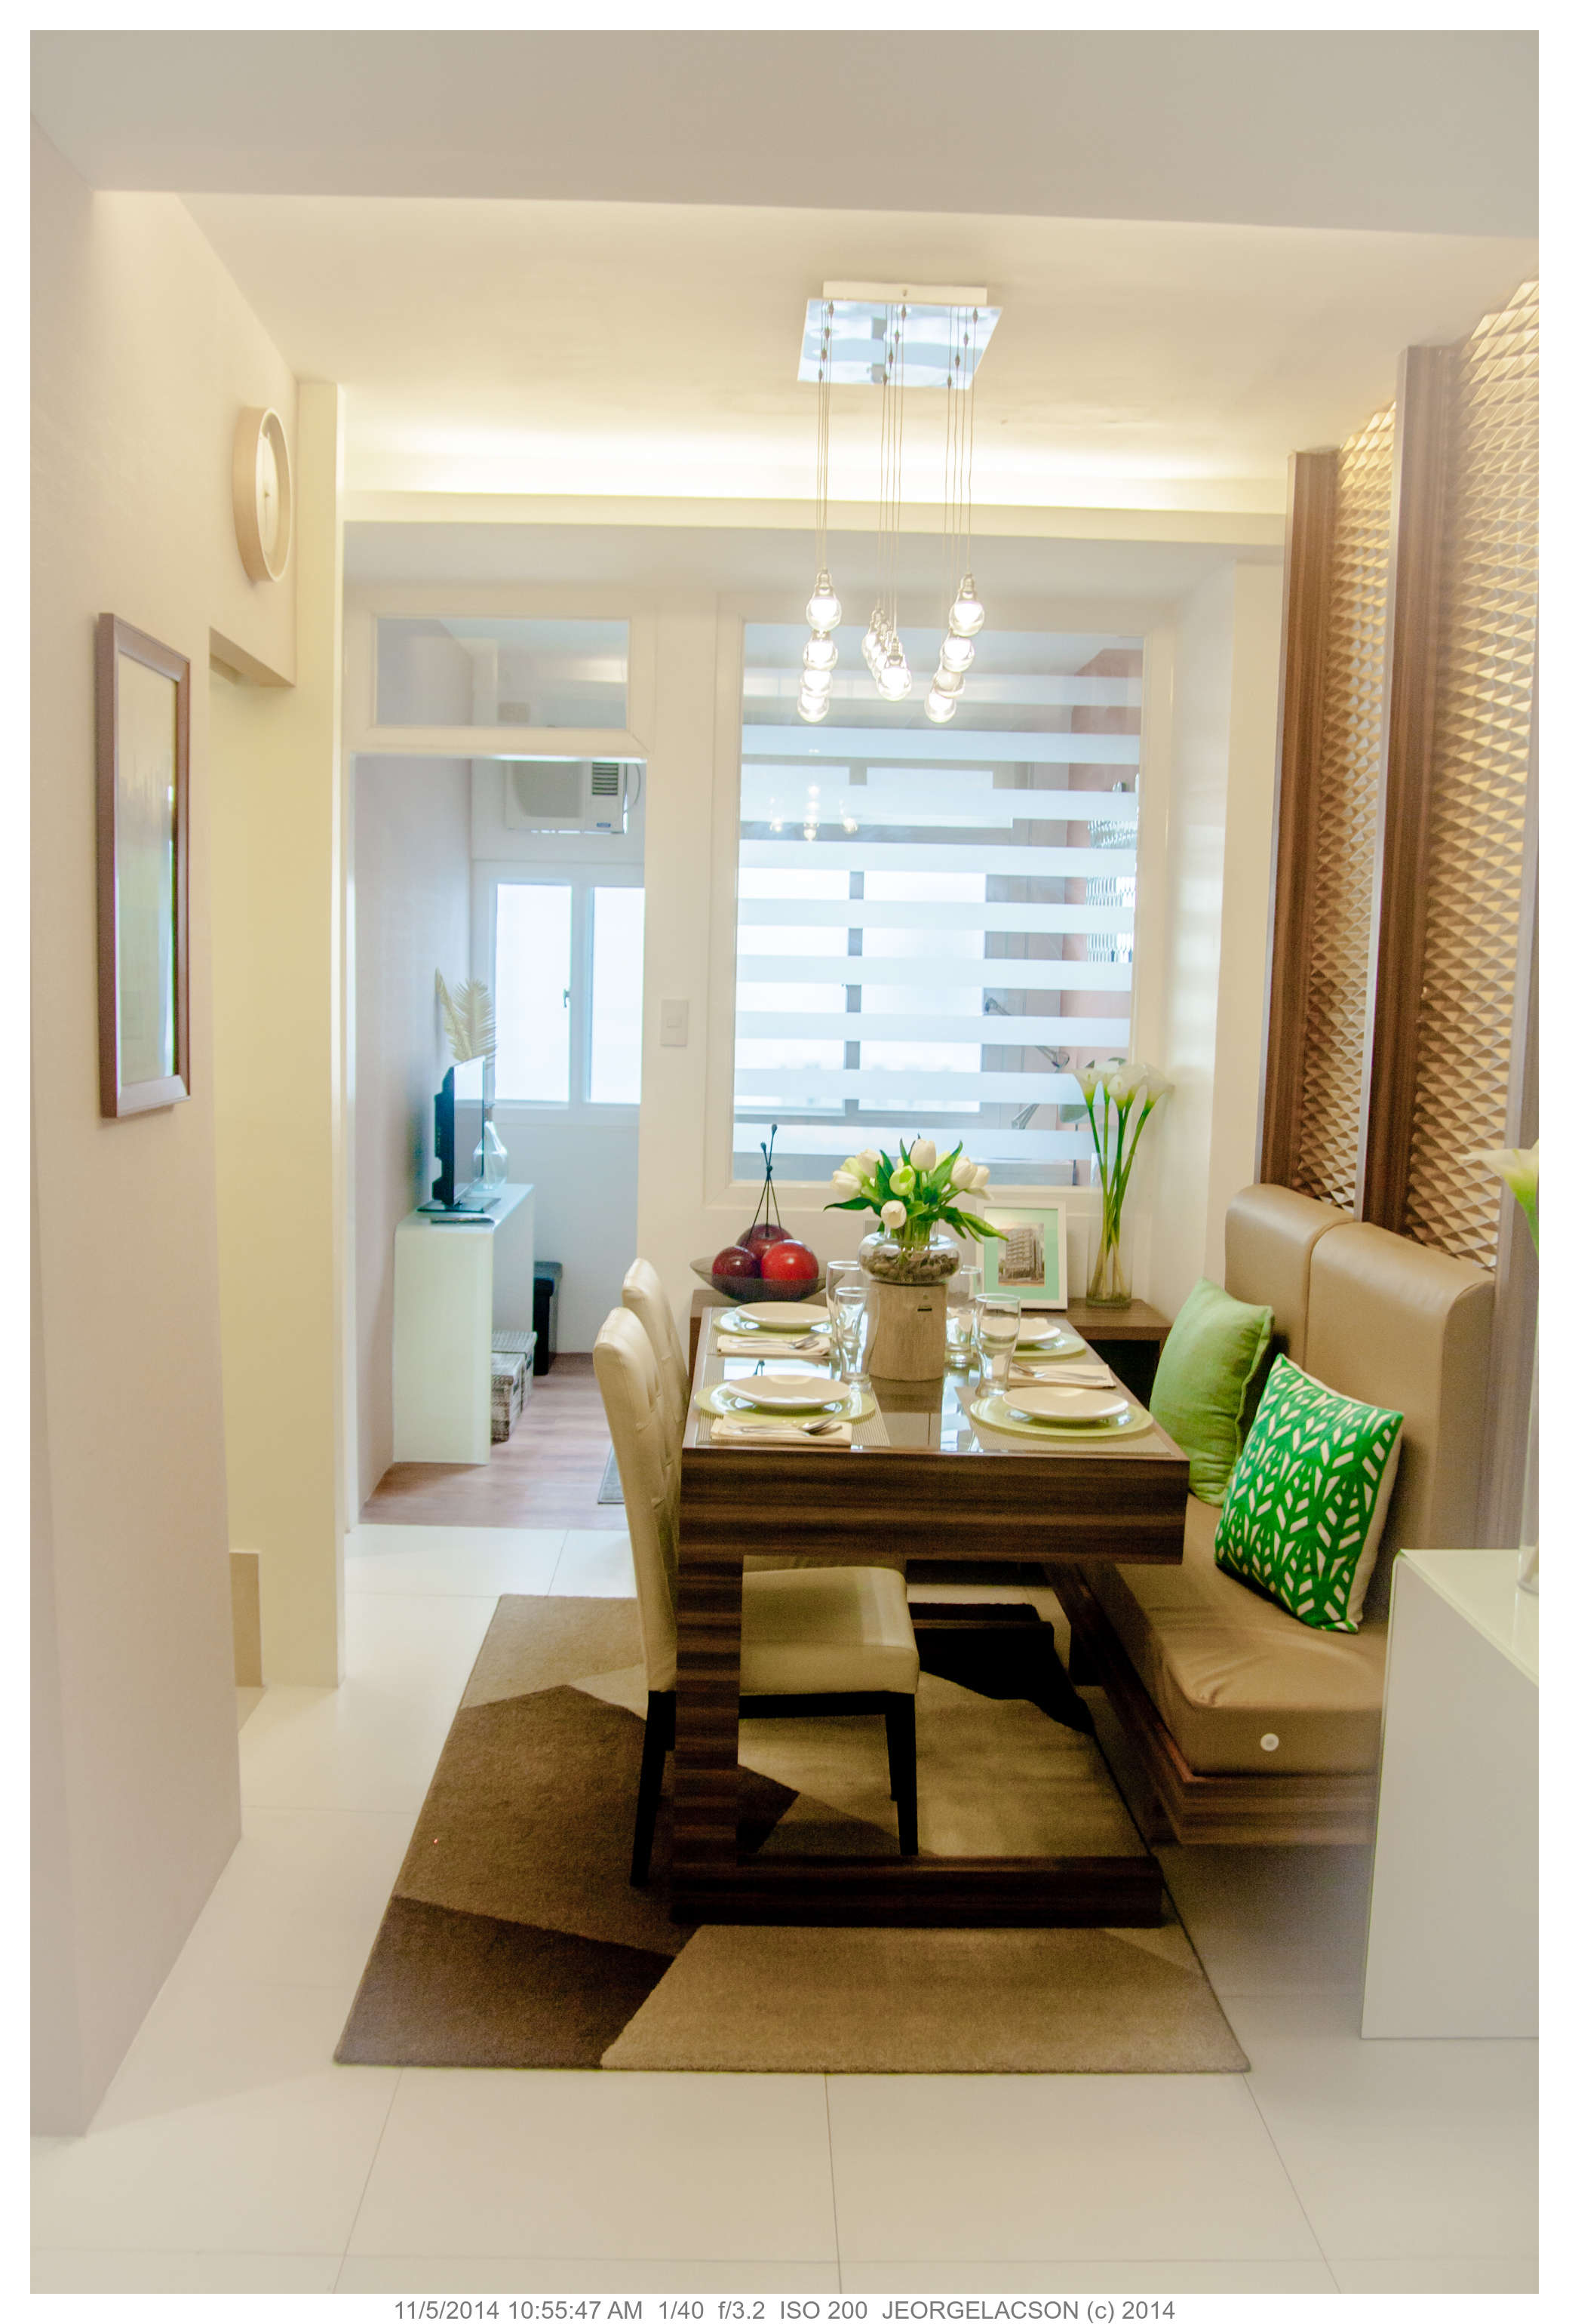 35.70 sqm Condominium unit